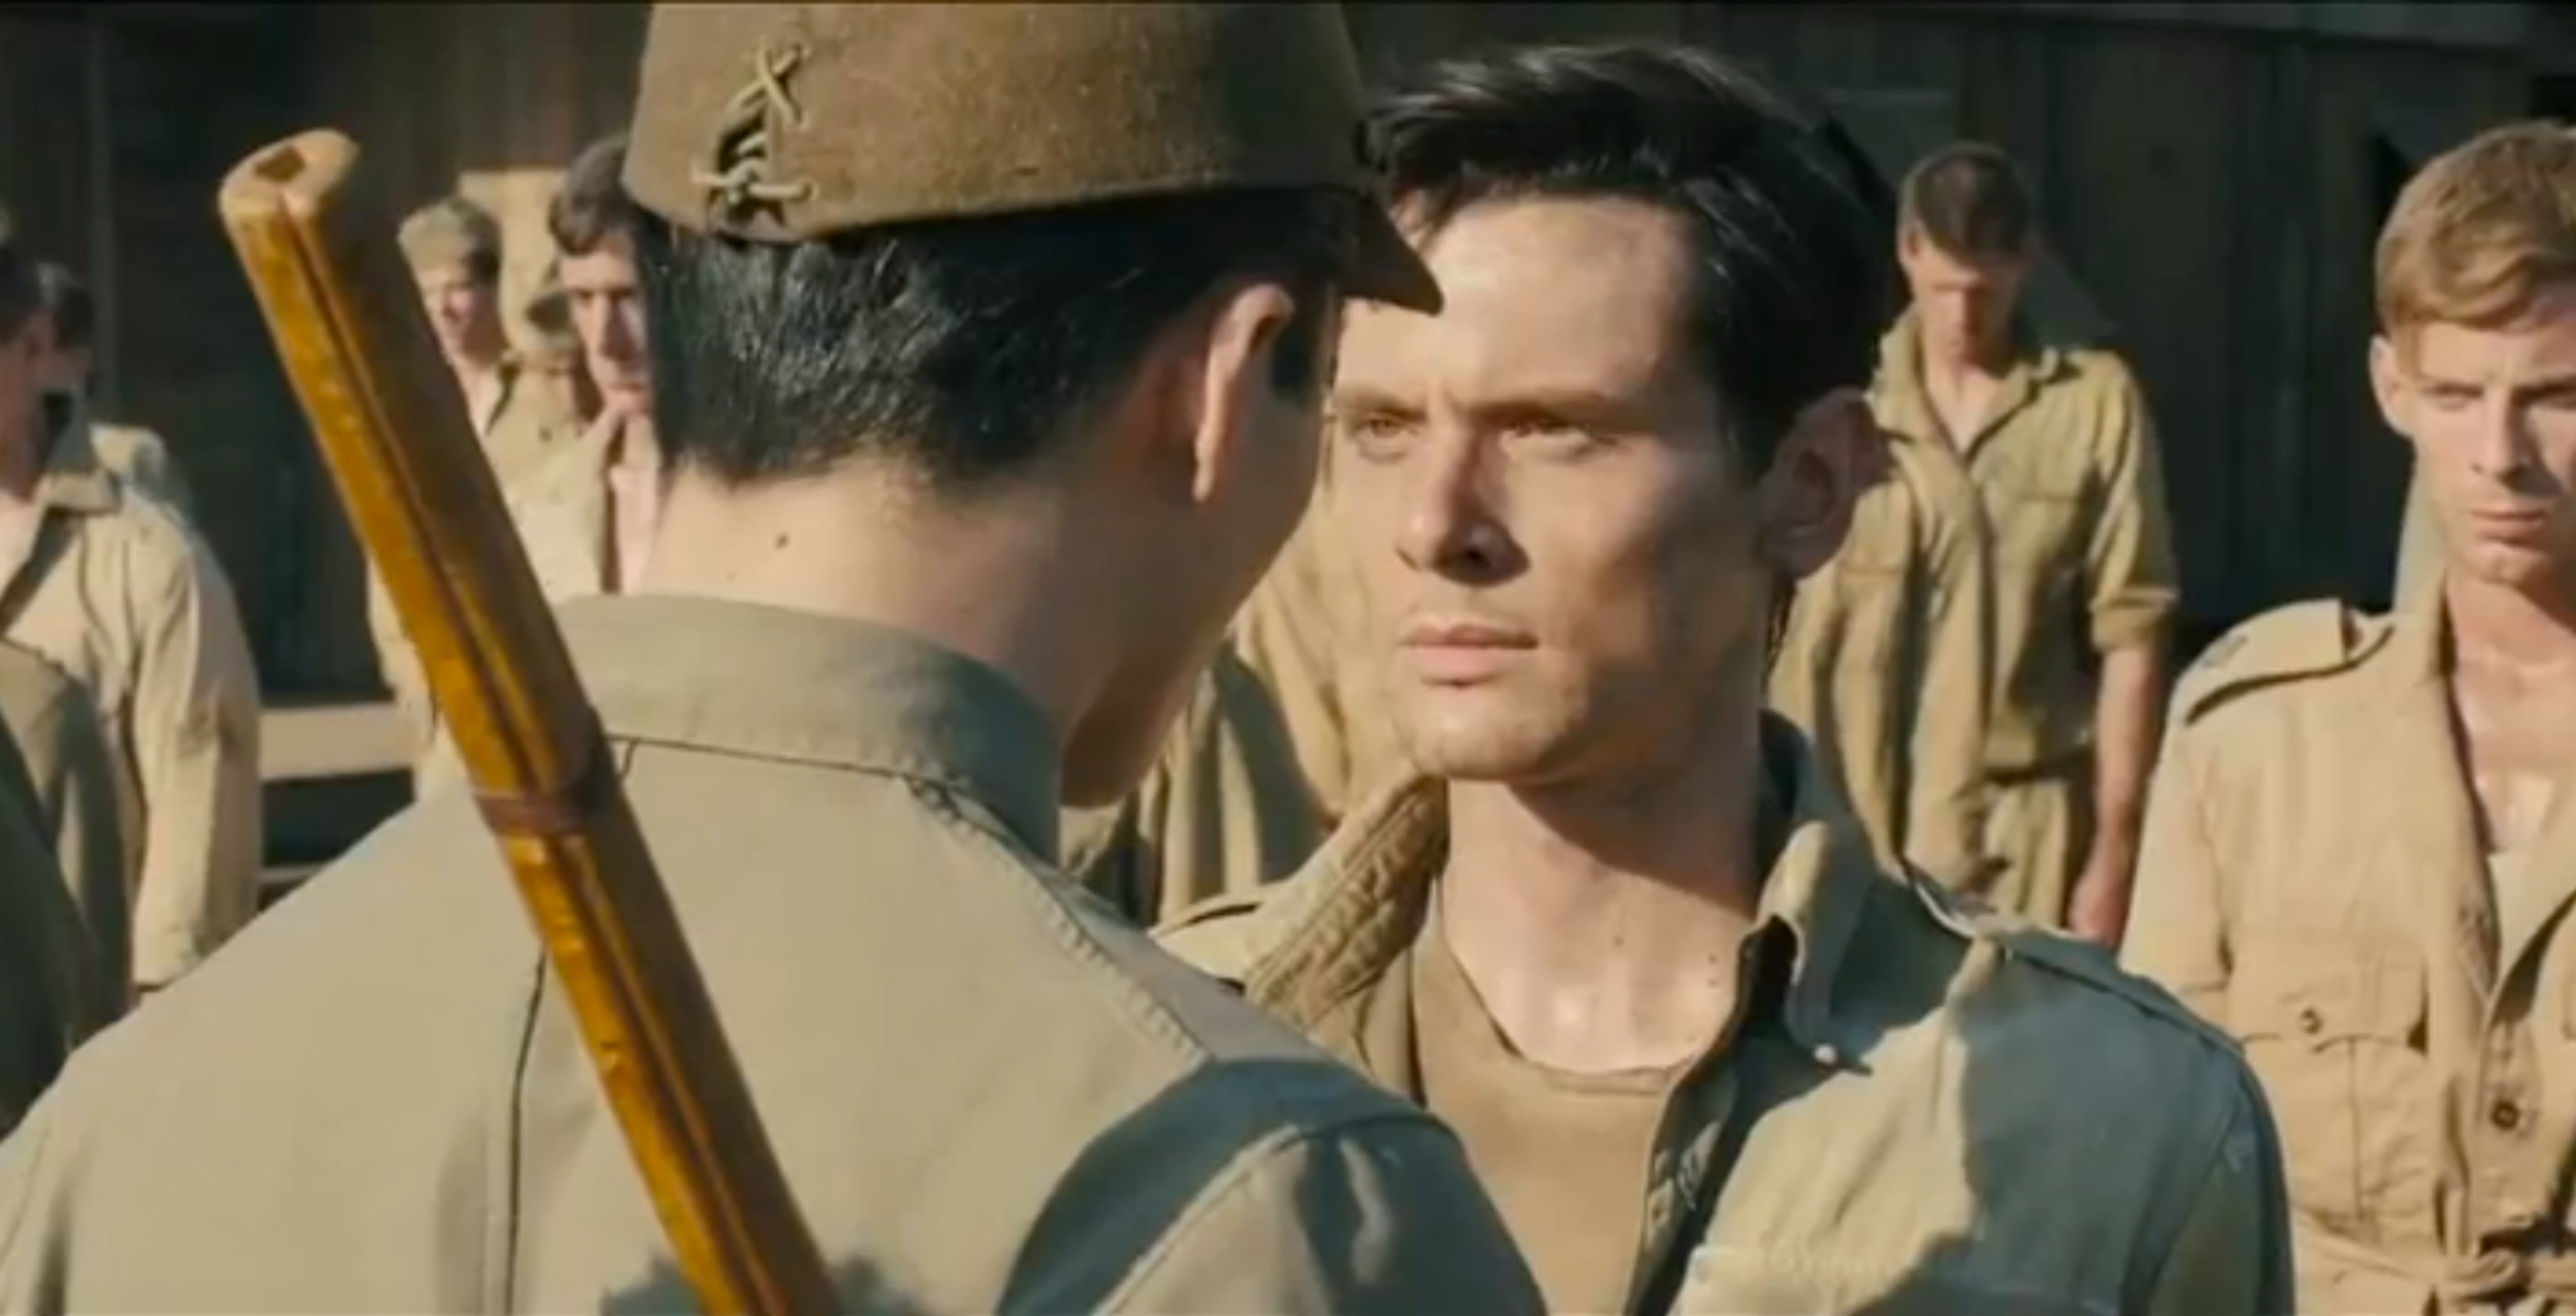 Unbroken' Opens Solid, 'American Sniper' A Hit in Limited